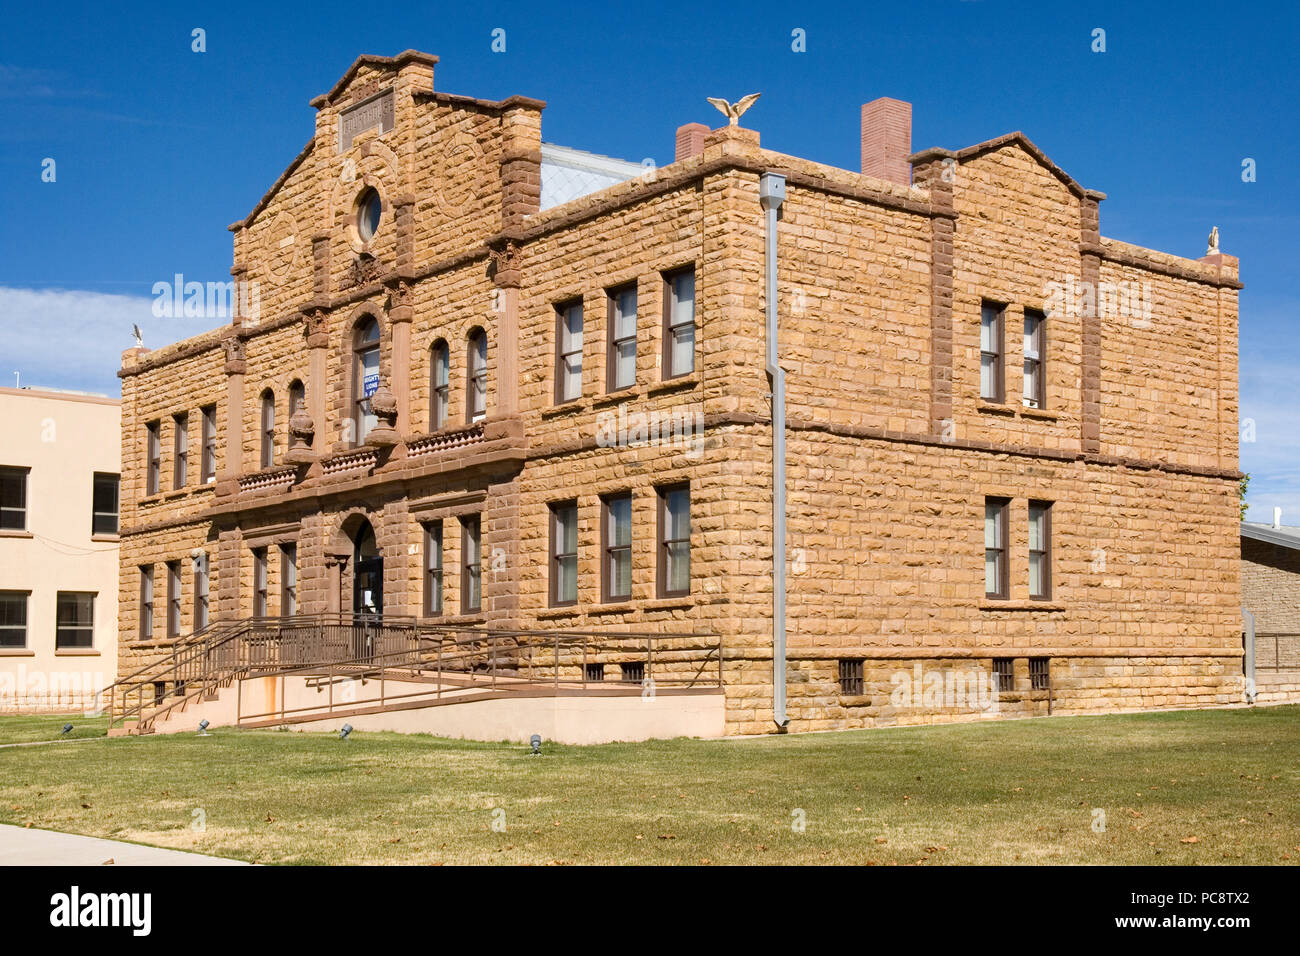 Historical Guadalupe County Courthouse, Santa Rosa New Mexico USA - Stock Image